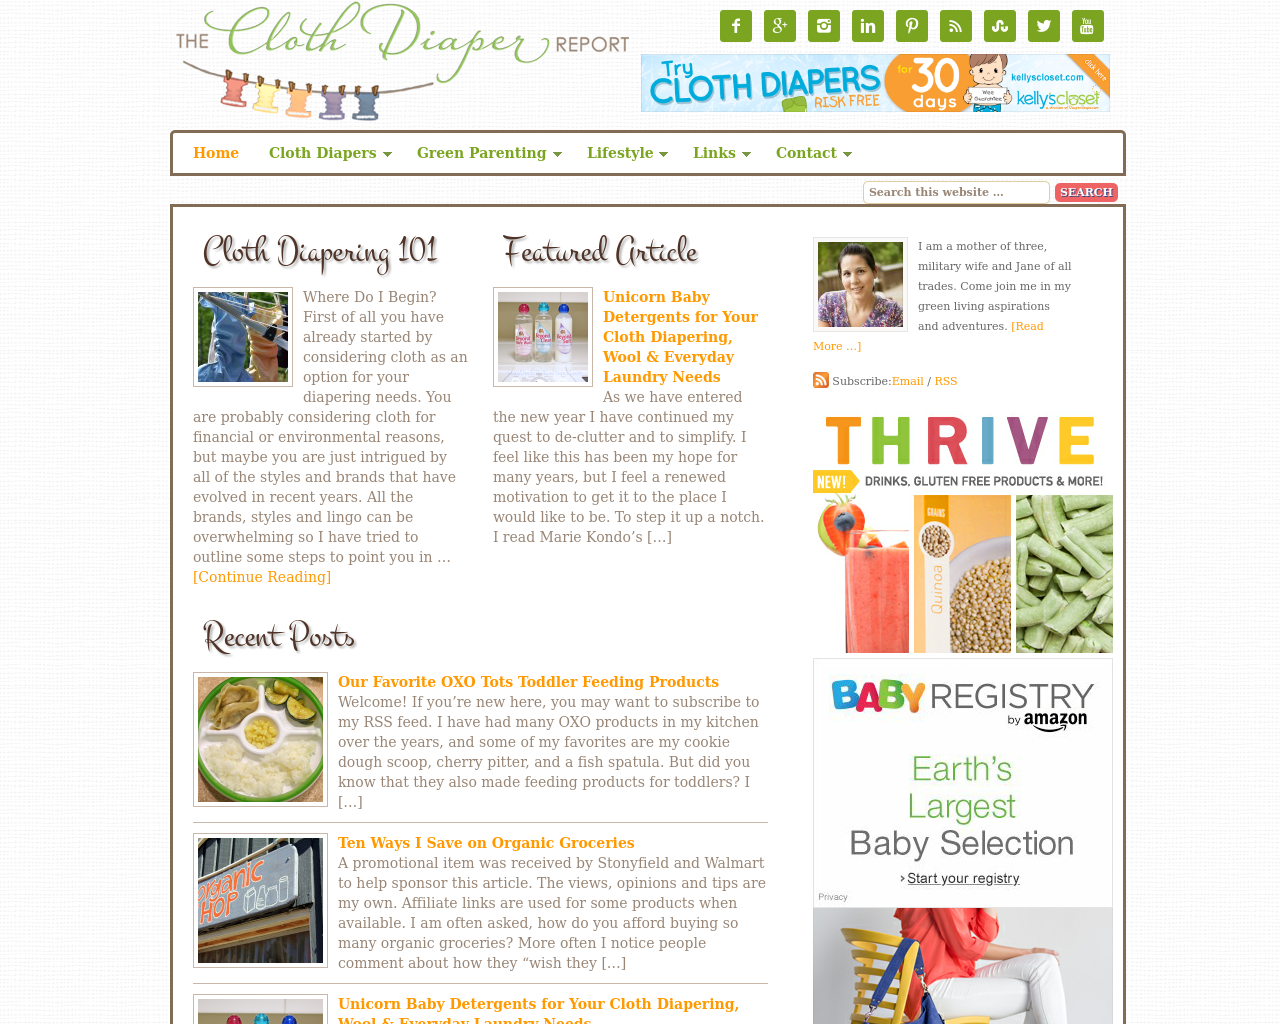 The-Cloth-Diaper-Report-Advertising-Reviews-Pricing